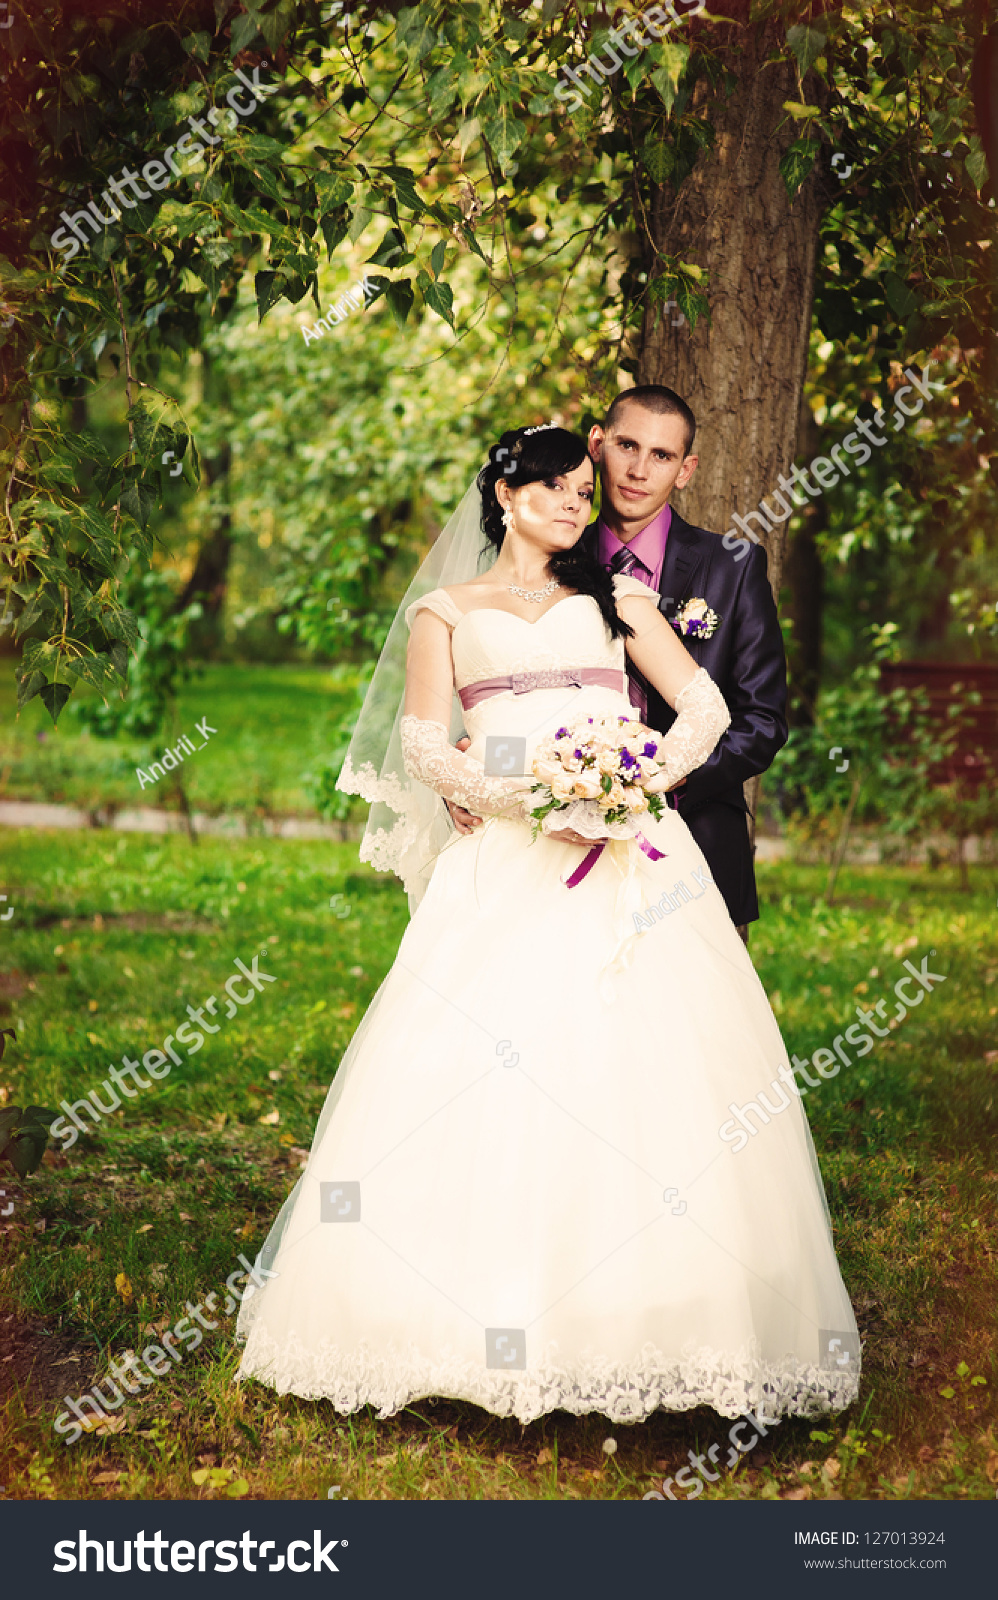 Happy Kiss Bride Groom Near Tree Stock Photo 127013924 - Shutterstock